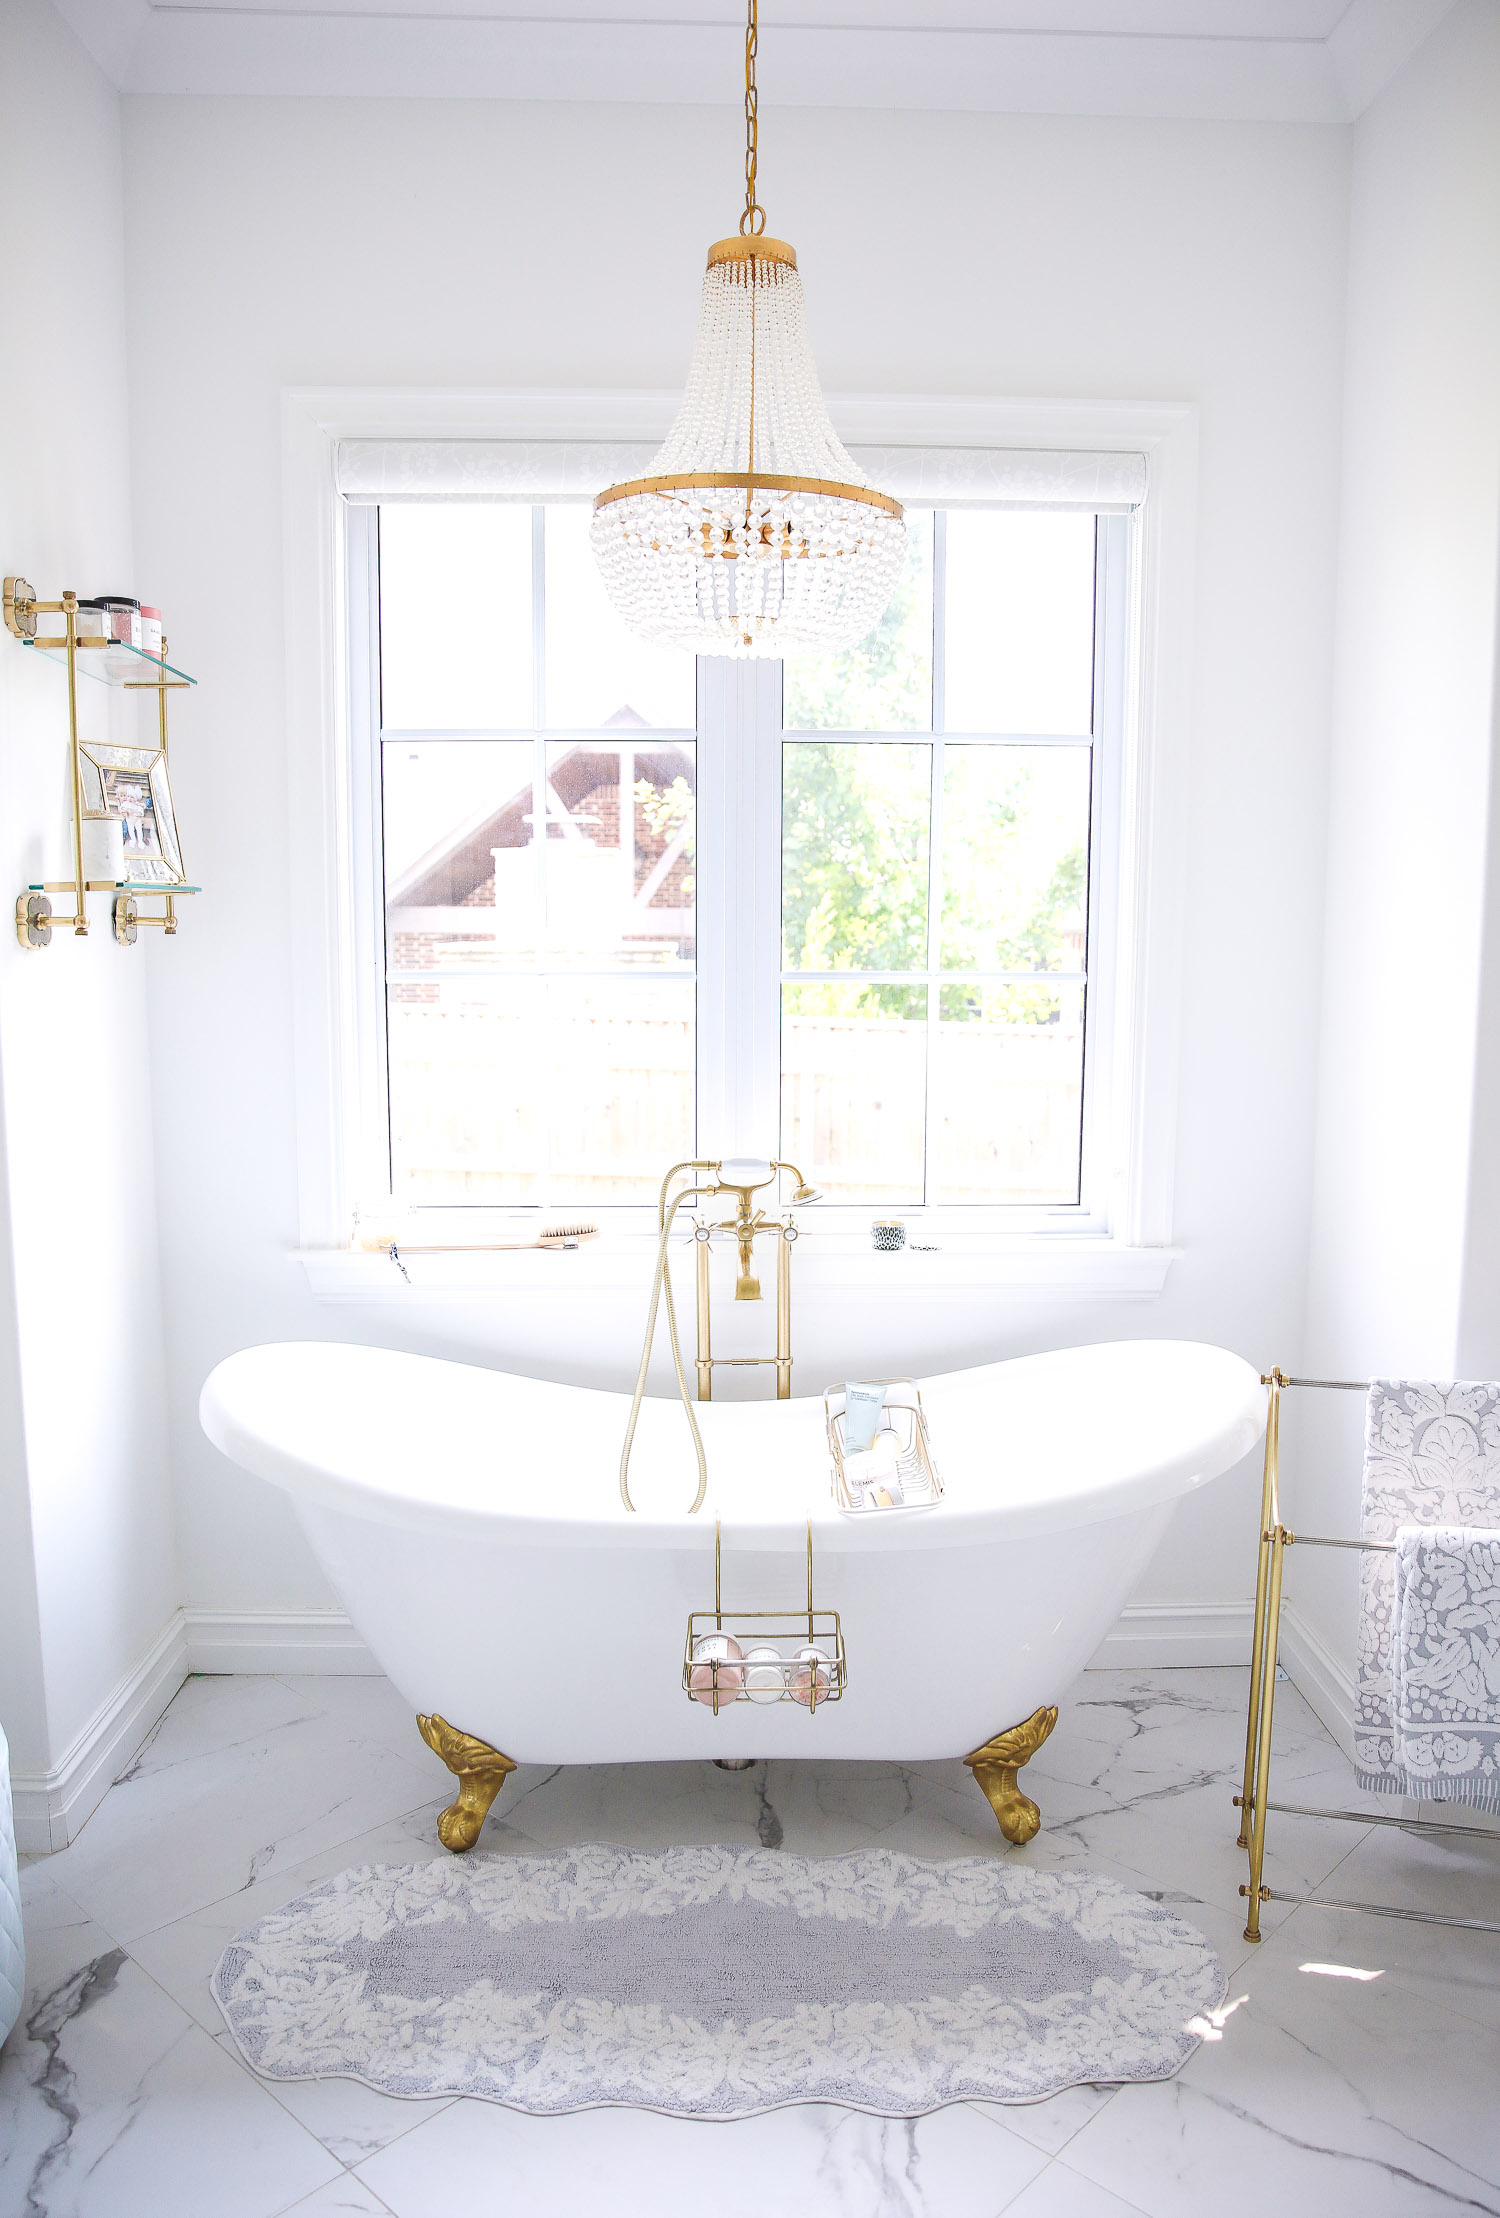 Emily gemma master bathroom, Nordstrom anniversary sale 2021 beauty must haves, anthropologie bathrom decor 2021, pinterest bathroom all white gold   Instagram Recap by popular US life and style blog, The Sweetest Thing: image of a white and gold clawfoot tub with a gold and crystal chandelier and gold towel rack.